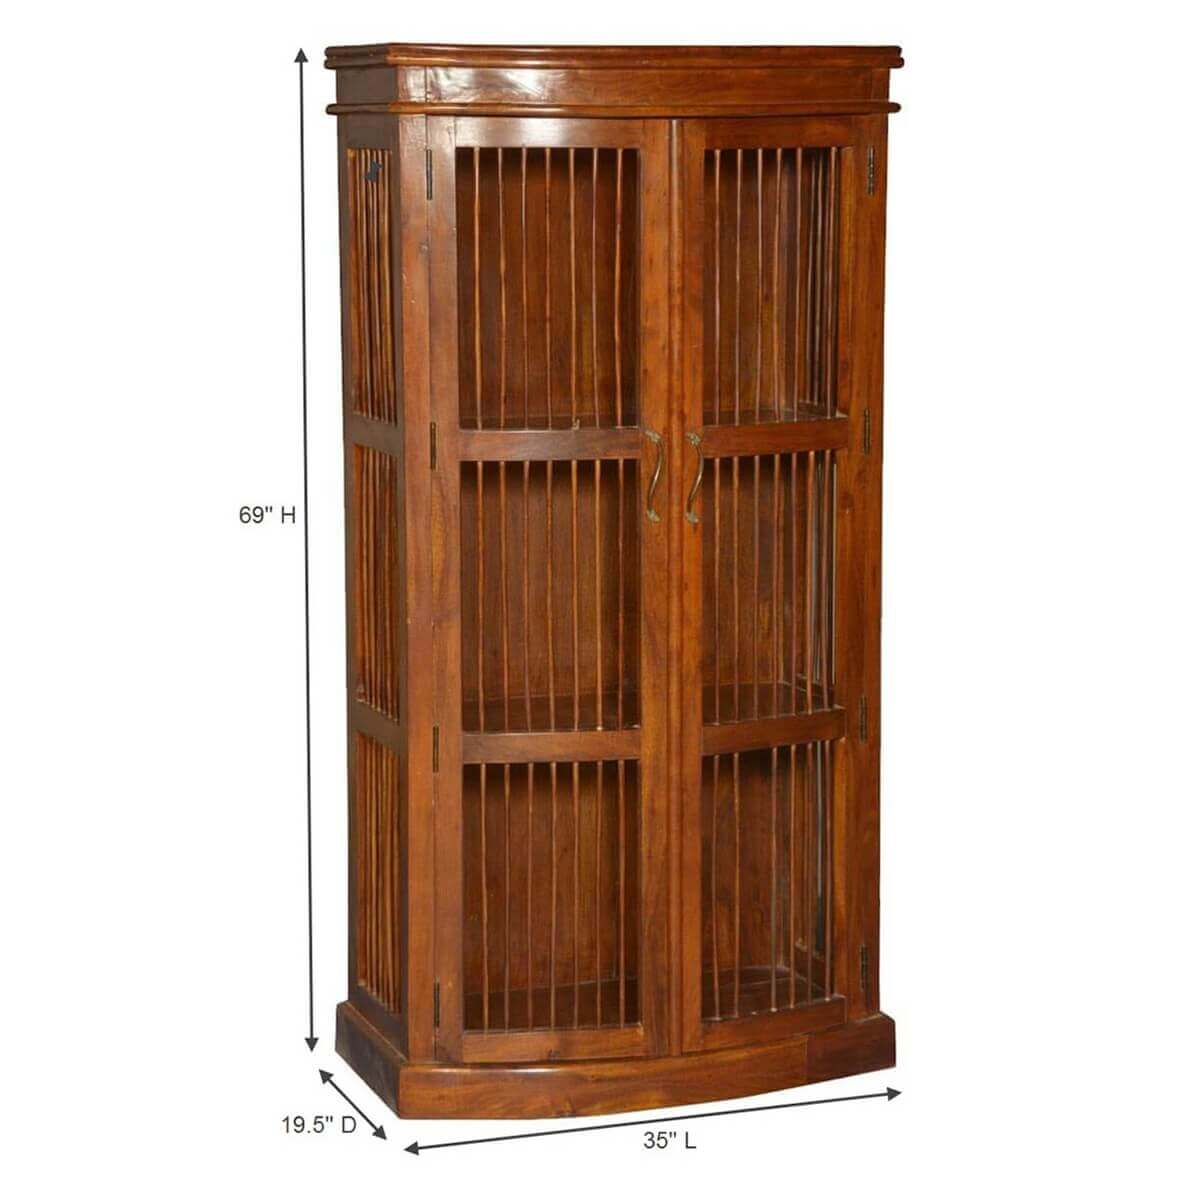 Wild West Acacia Wood Wooden Bars Curio Display Cabinet